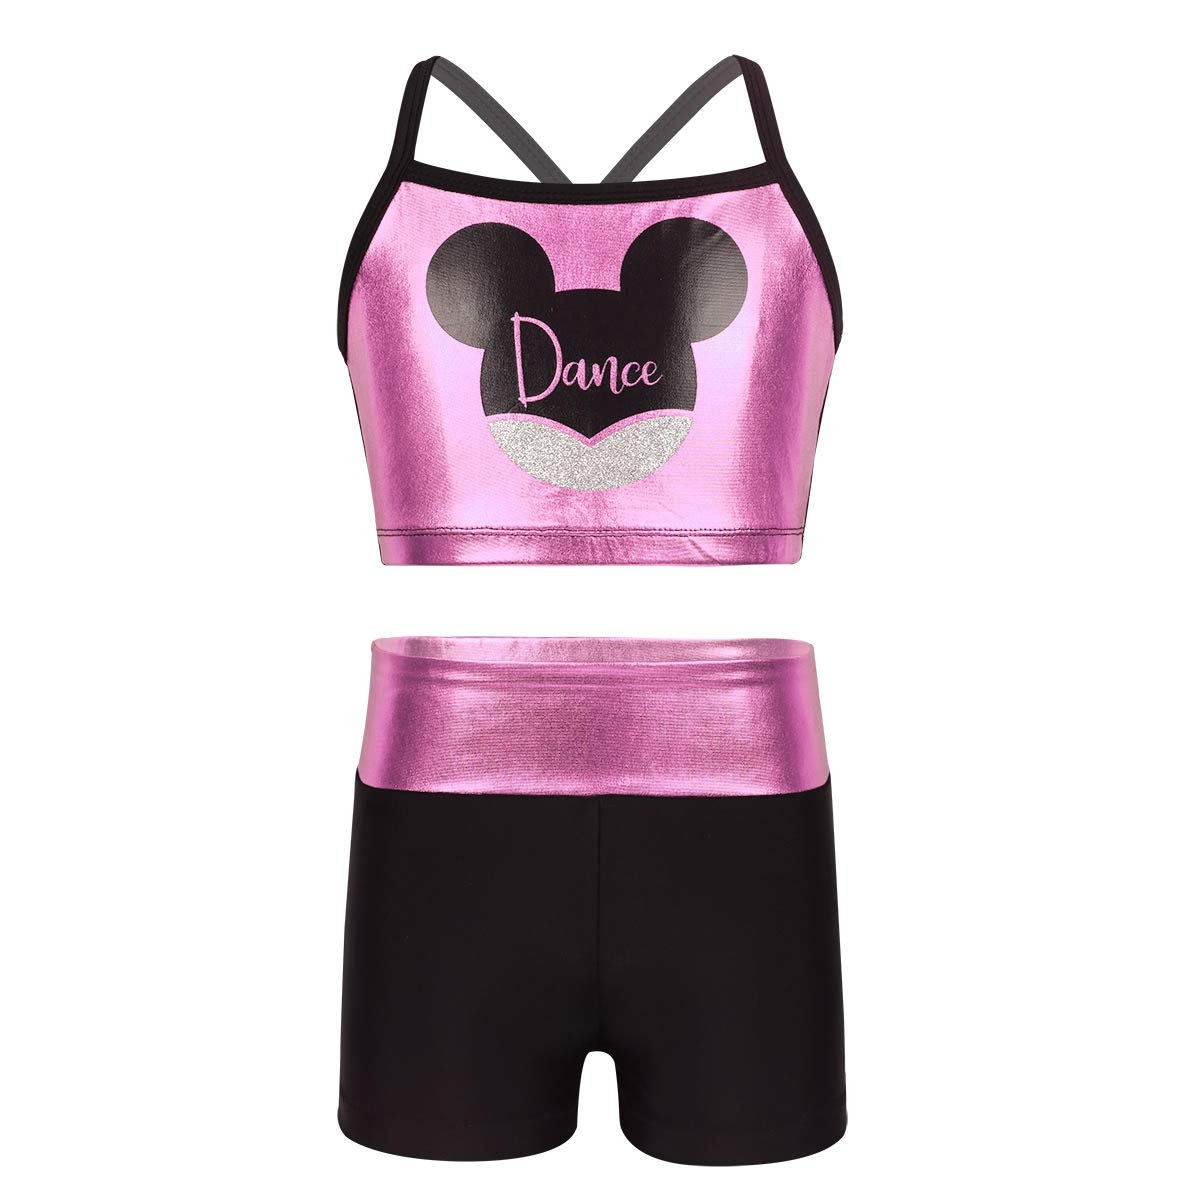 dPois Kids Girls' Polka Dot Strappy Top Bra with Shorts Set for Sports Workout Gymnastics Leotard Dancing Pink (Mouse) 3-4